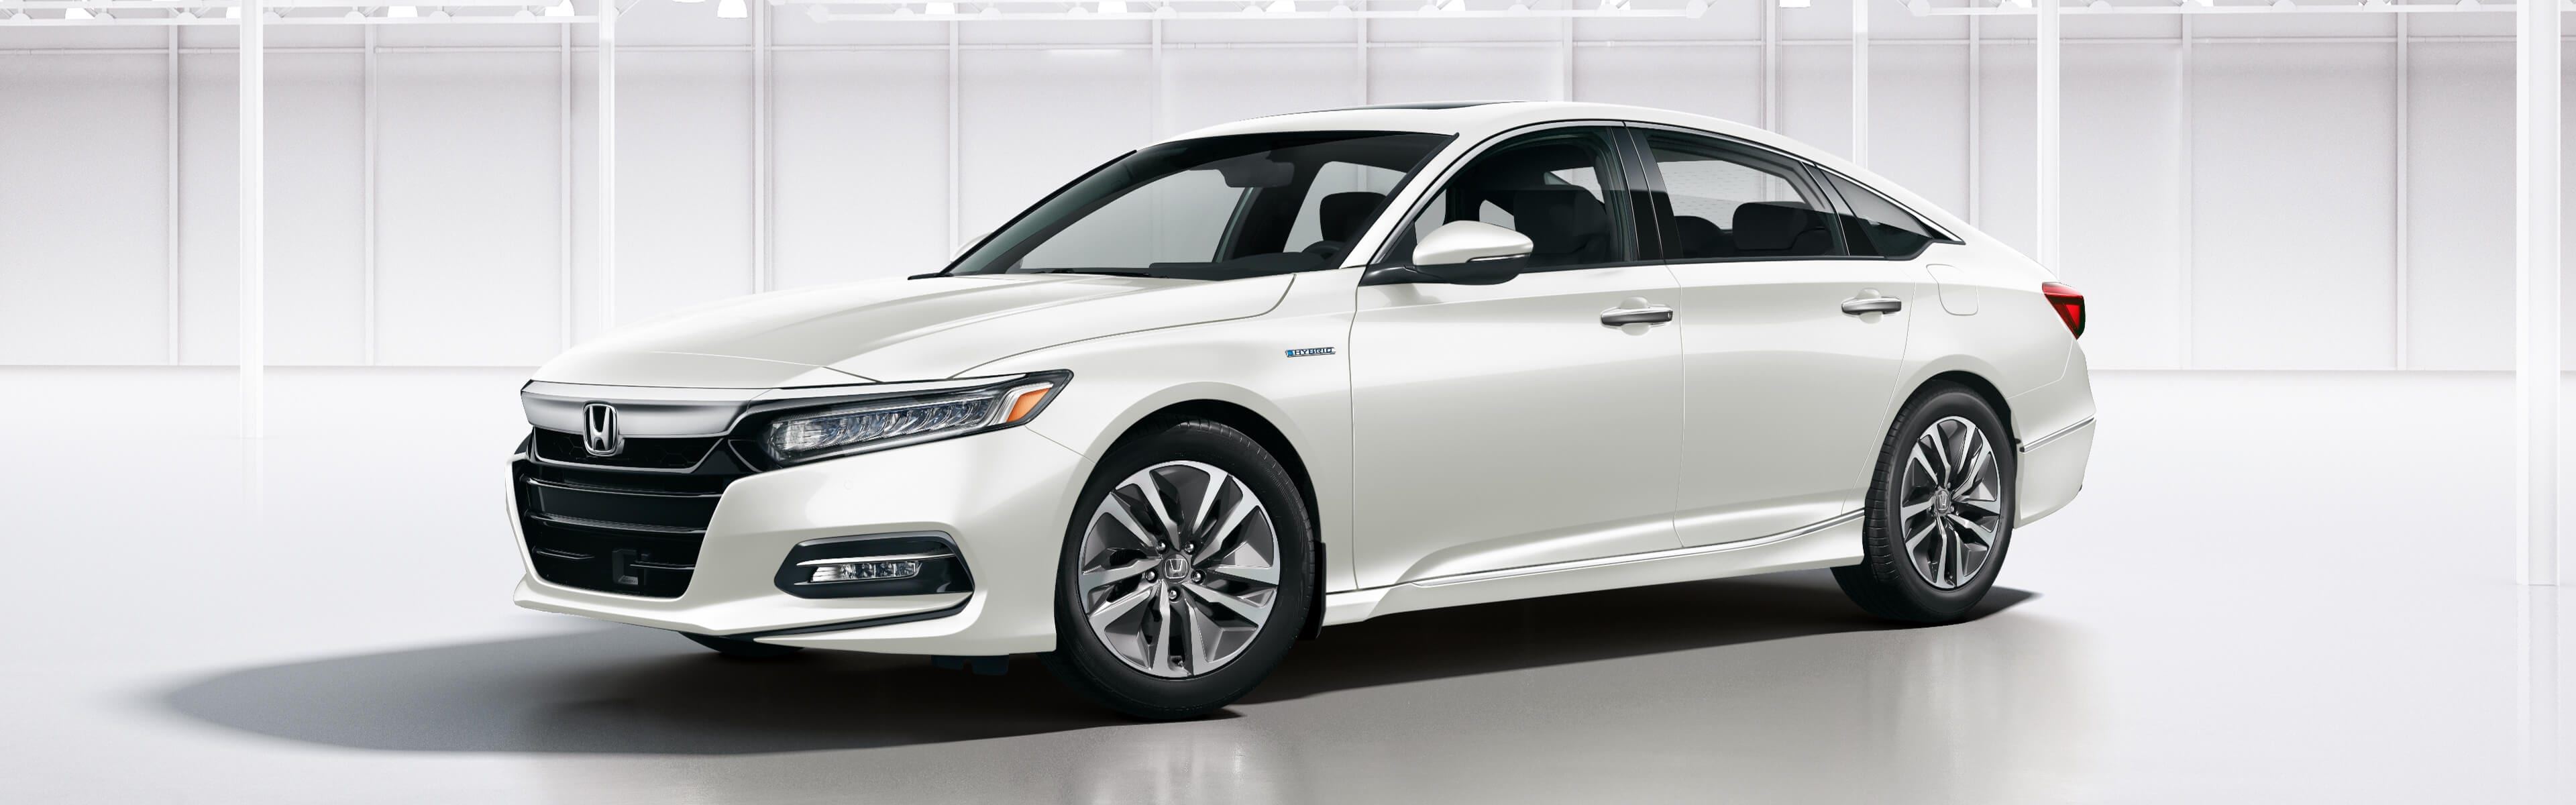 2020 Accord Hybrid in white